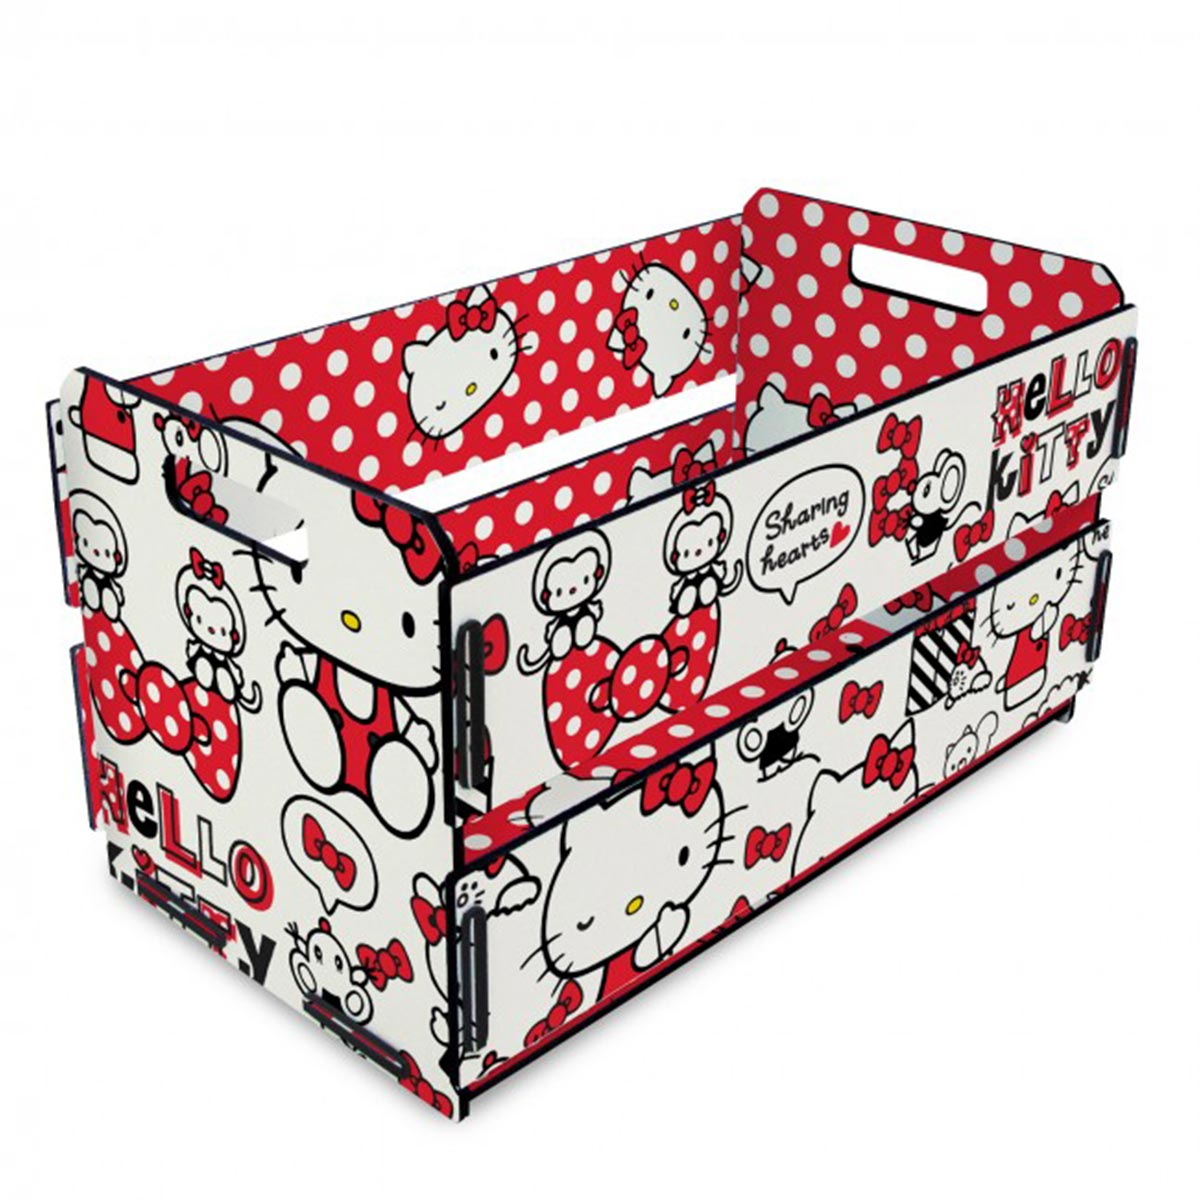 Caixote de Feira Hello Kitty Red Bow